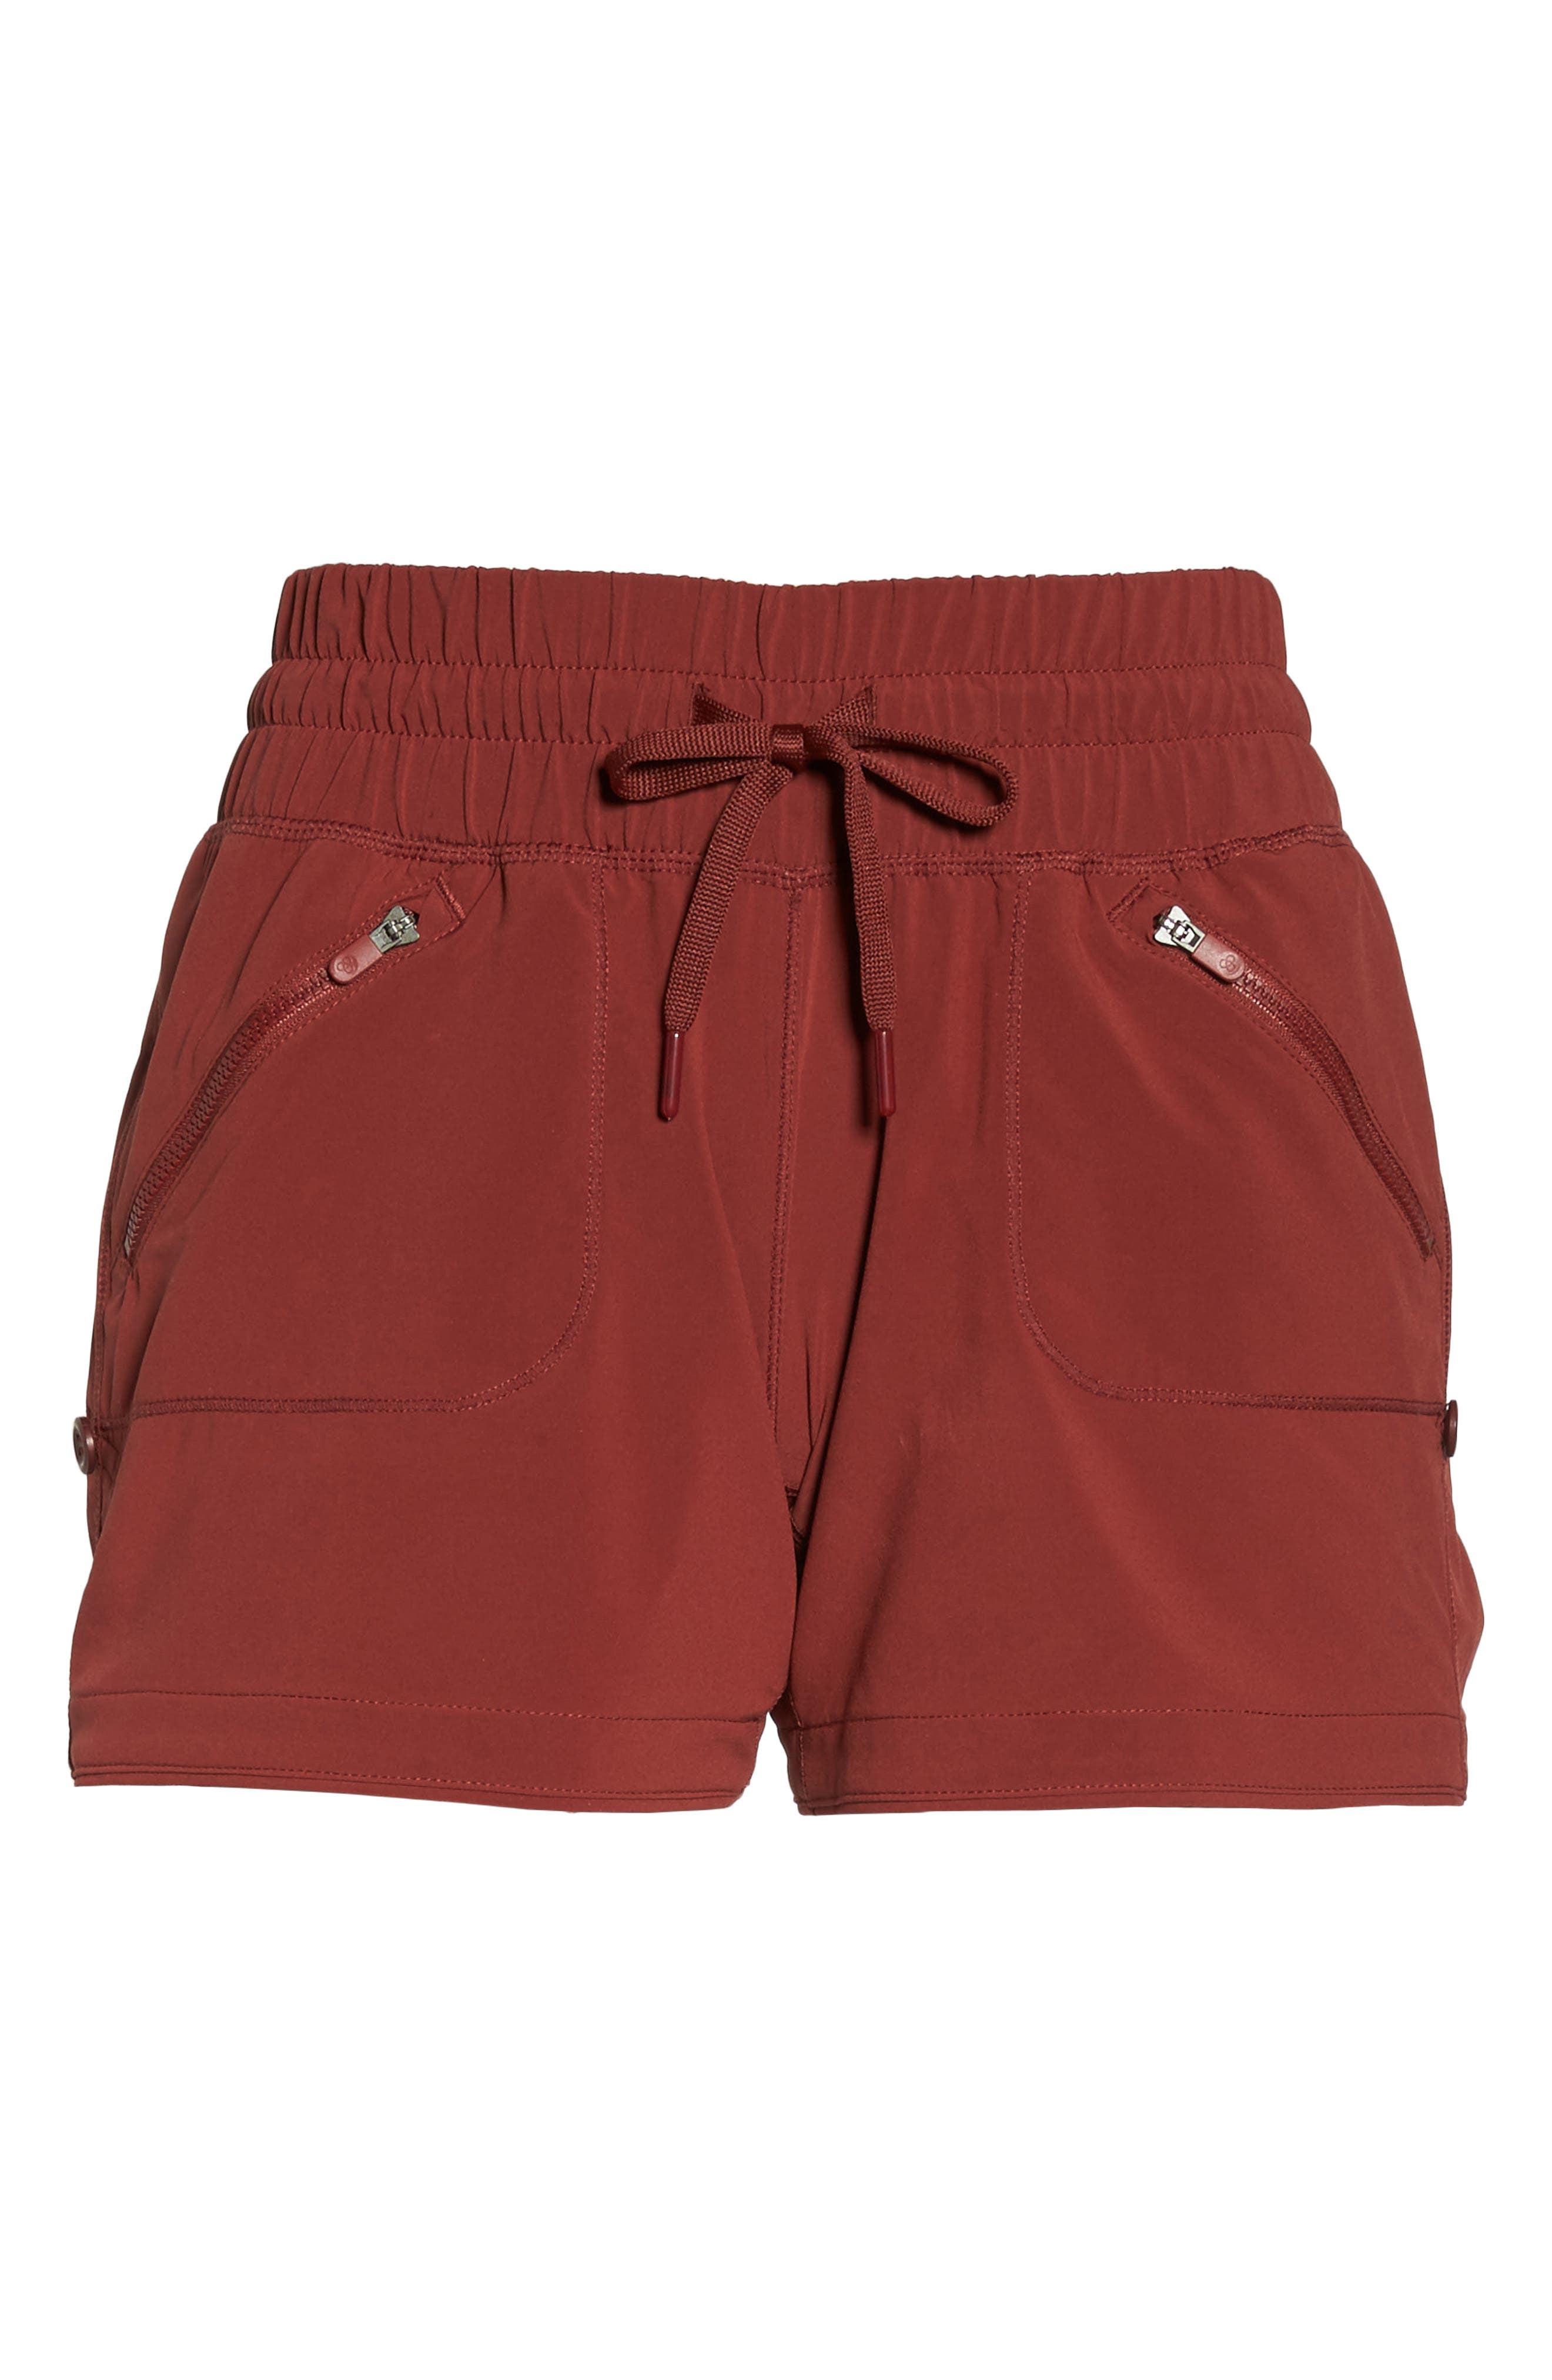 Switchback Shorts,                             Alternate thumbnail 7, color,                             210